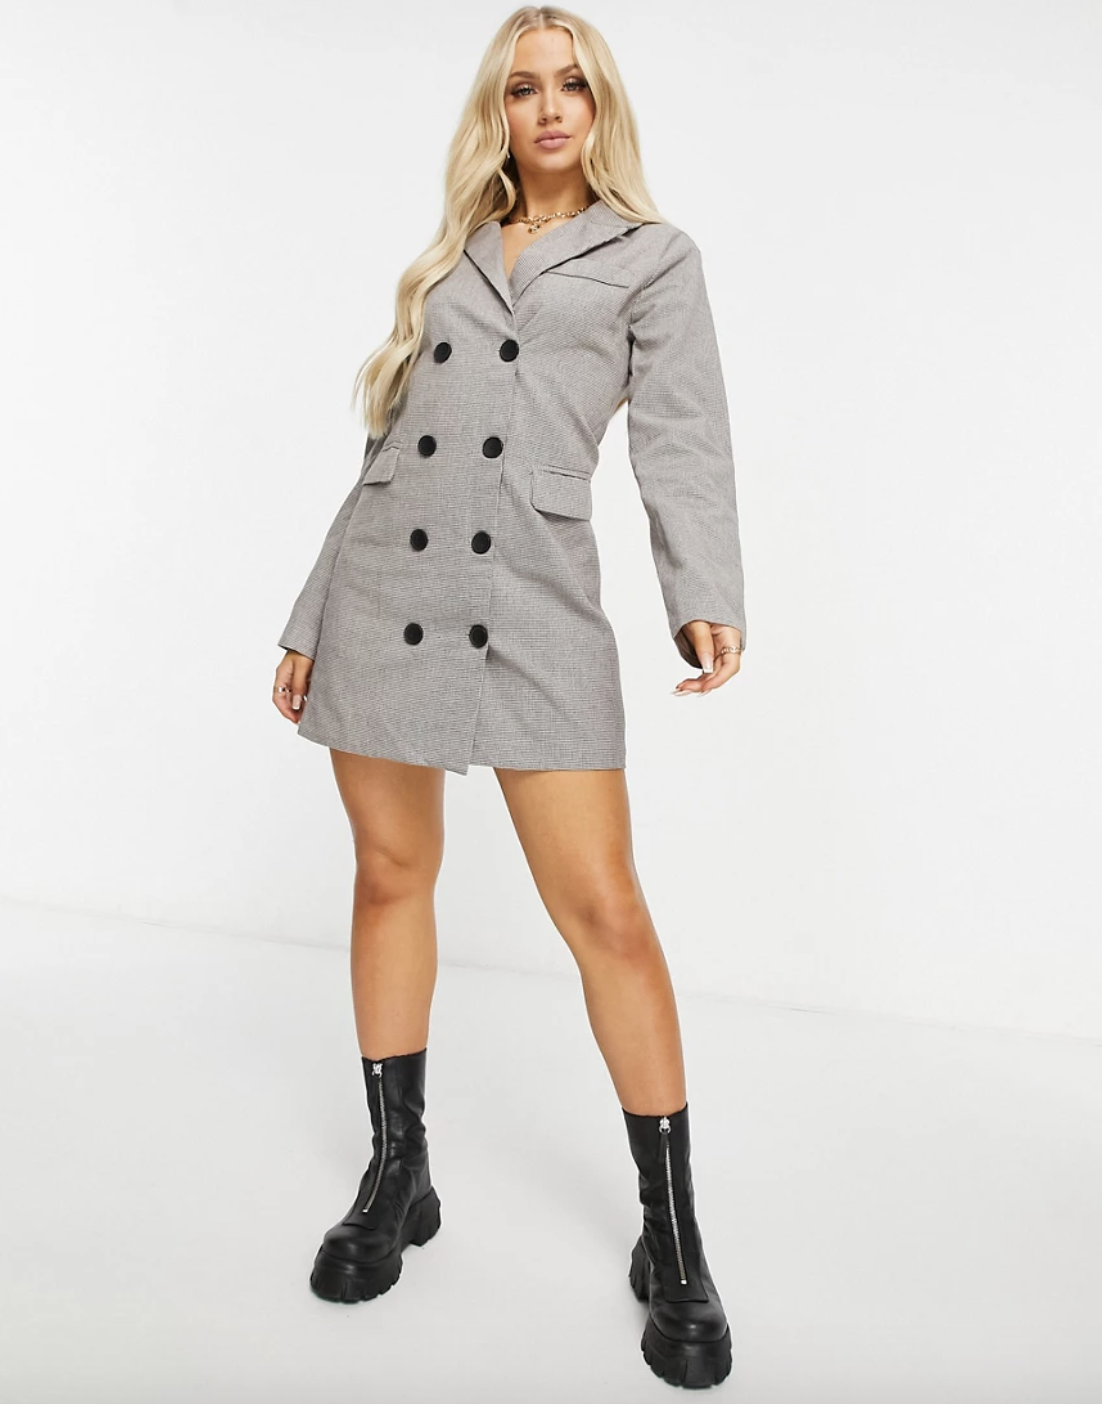 model wearing gray blazer jacket buttoned up with black boots